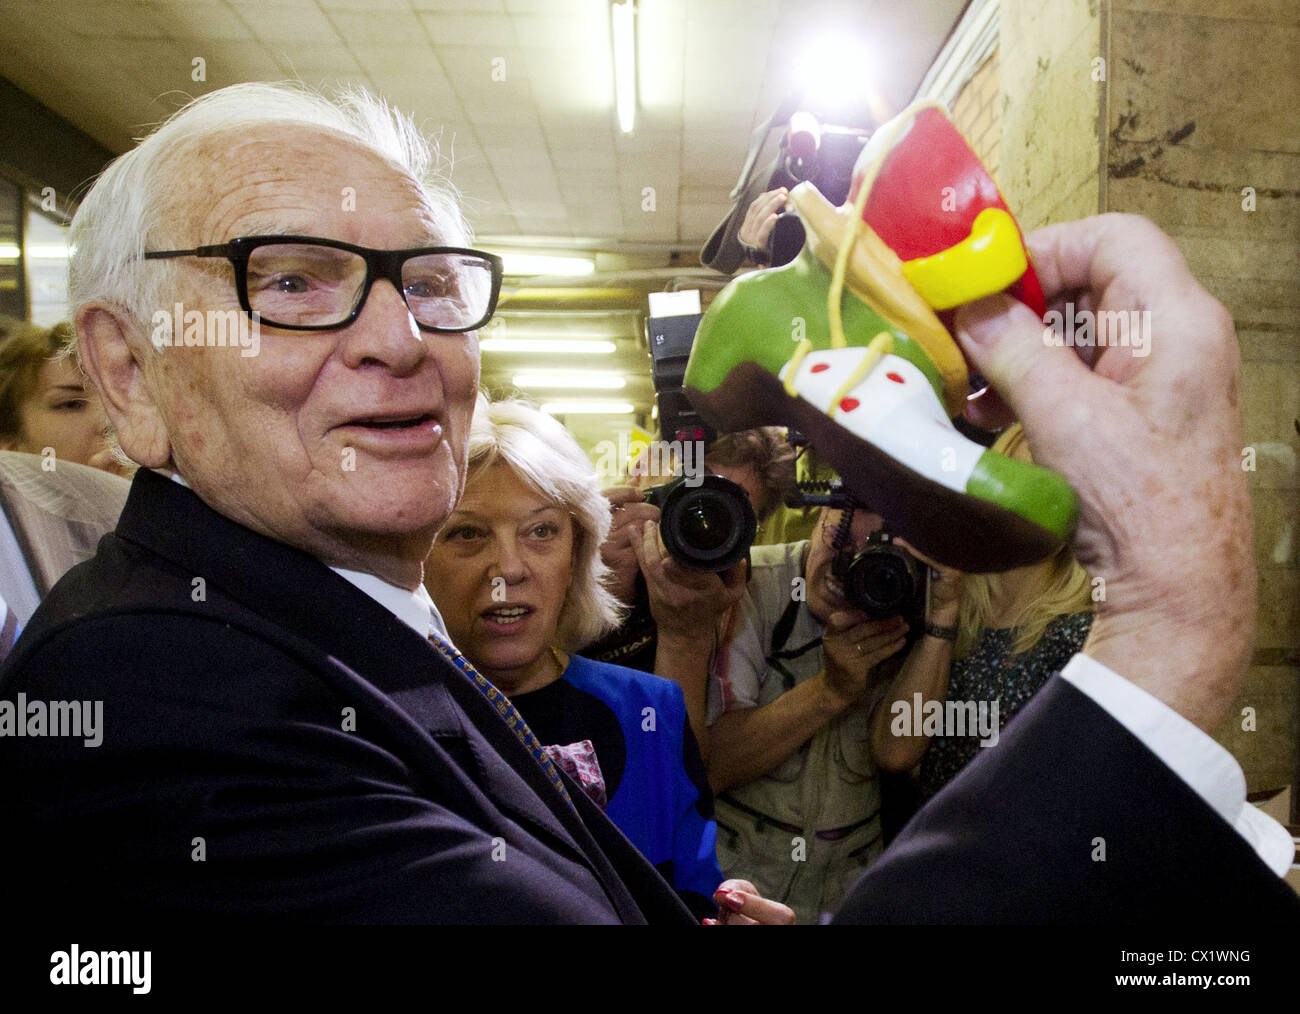 ITAR-TASS: MOSCOW, RUSSIA. JUNE 7, 2011. French designer Pierre Cardin poses with a souvenir boot at Moscow's - Stock Image